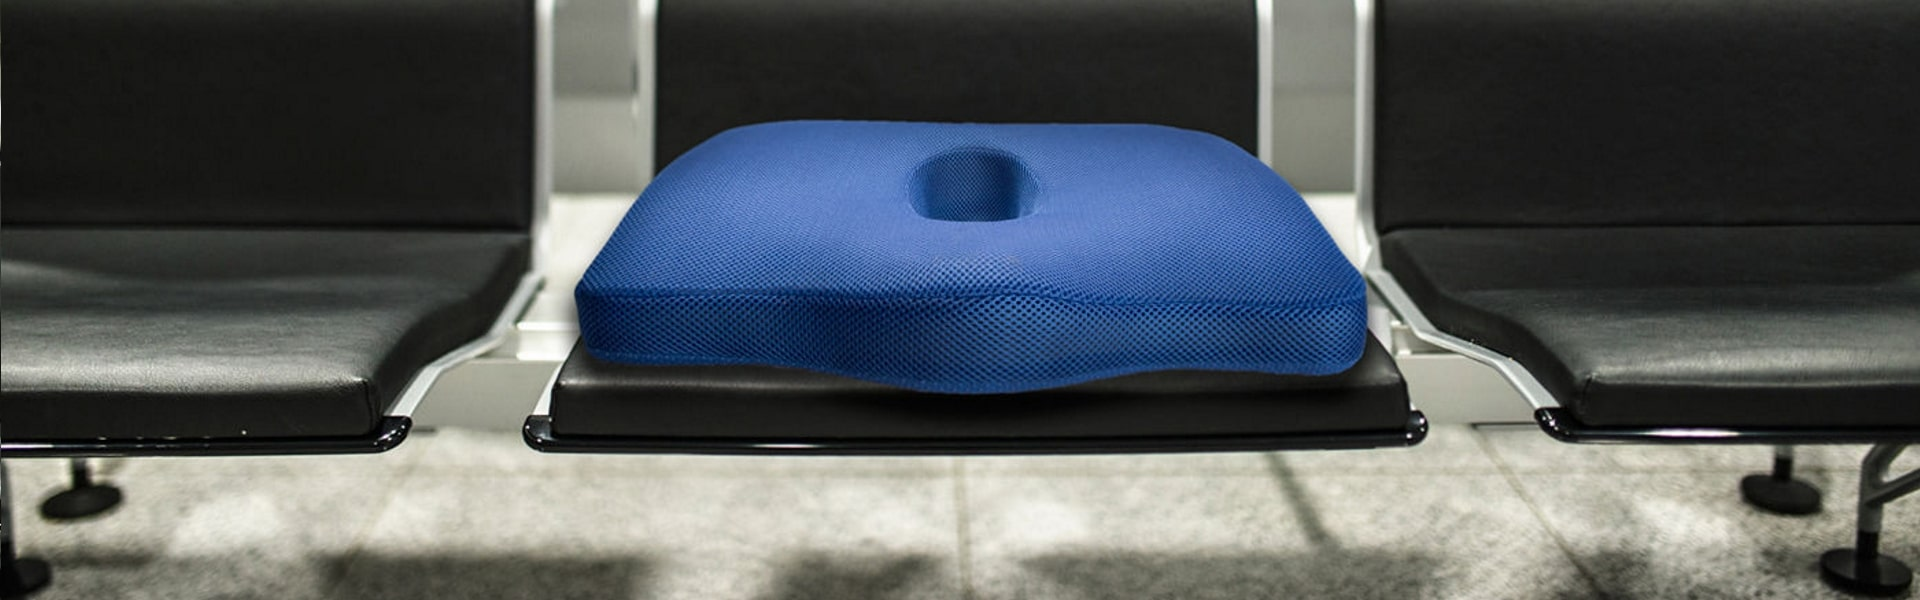 Best Coccyx Cushions Reviewed in Detail